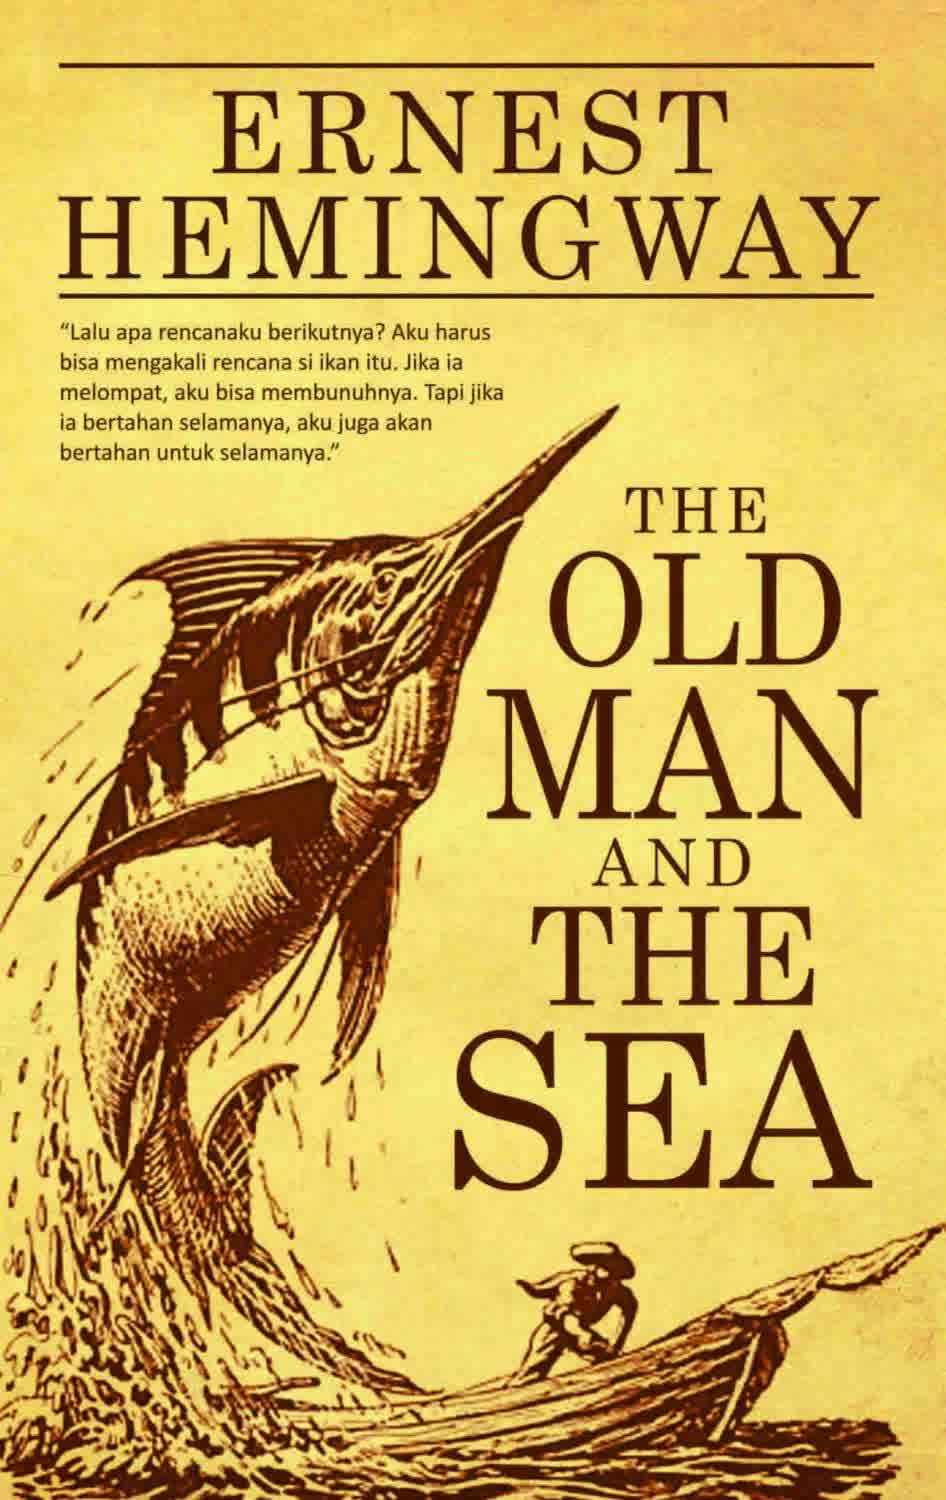 the great dimaggio in the novel the old man and the sea by ernest hemingway Ernest hemingway was born on july 21 the old man in the old man and the sea went after the fish think of the great dimaggiop 1he looked up to him and.